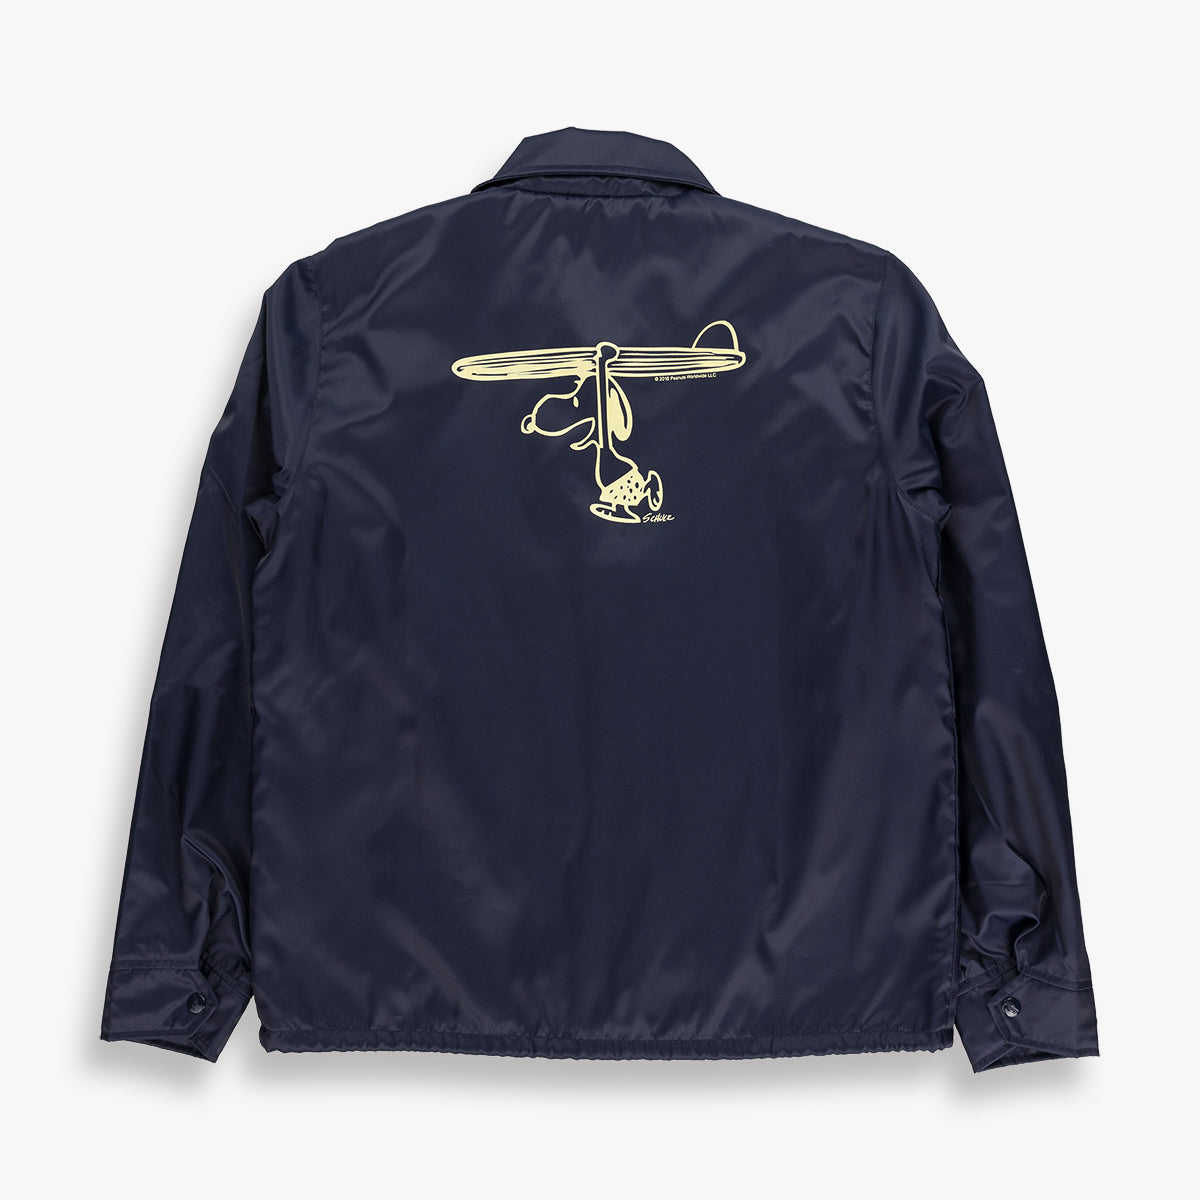 Snoopy Surf's Up! Coach Jacket